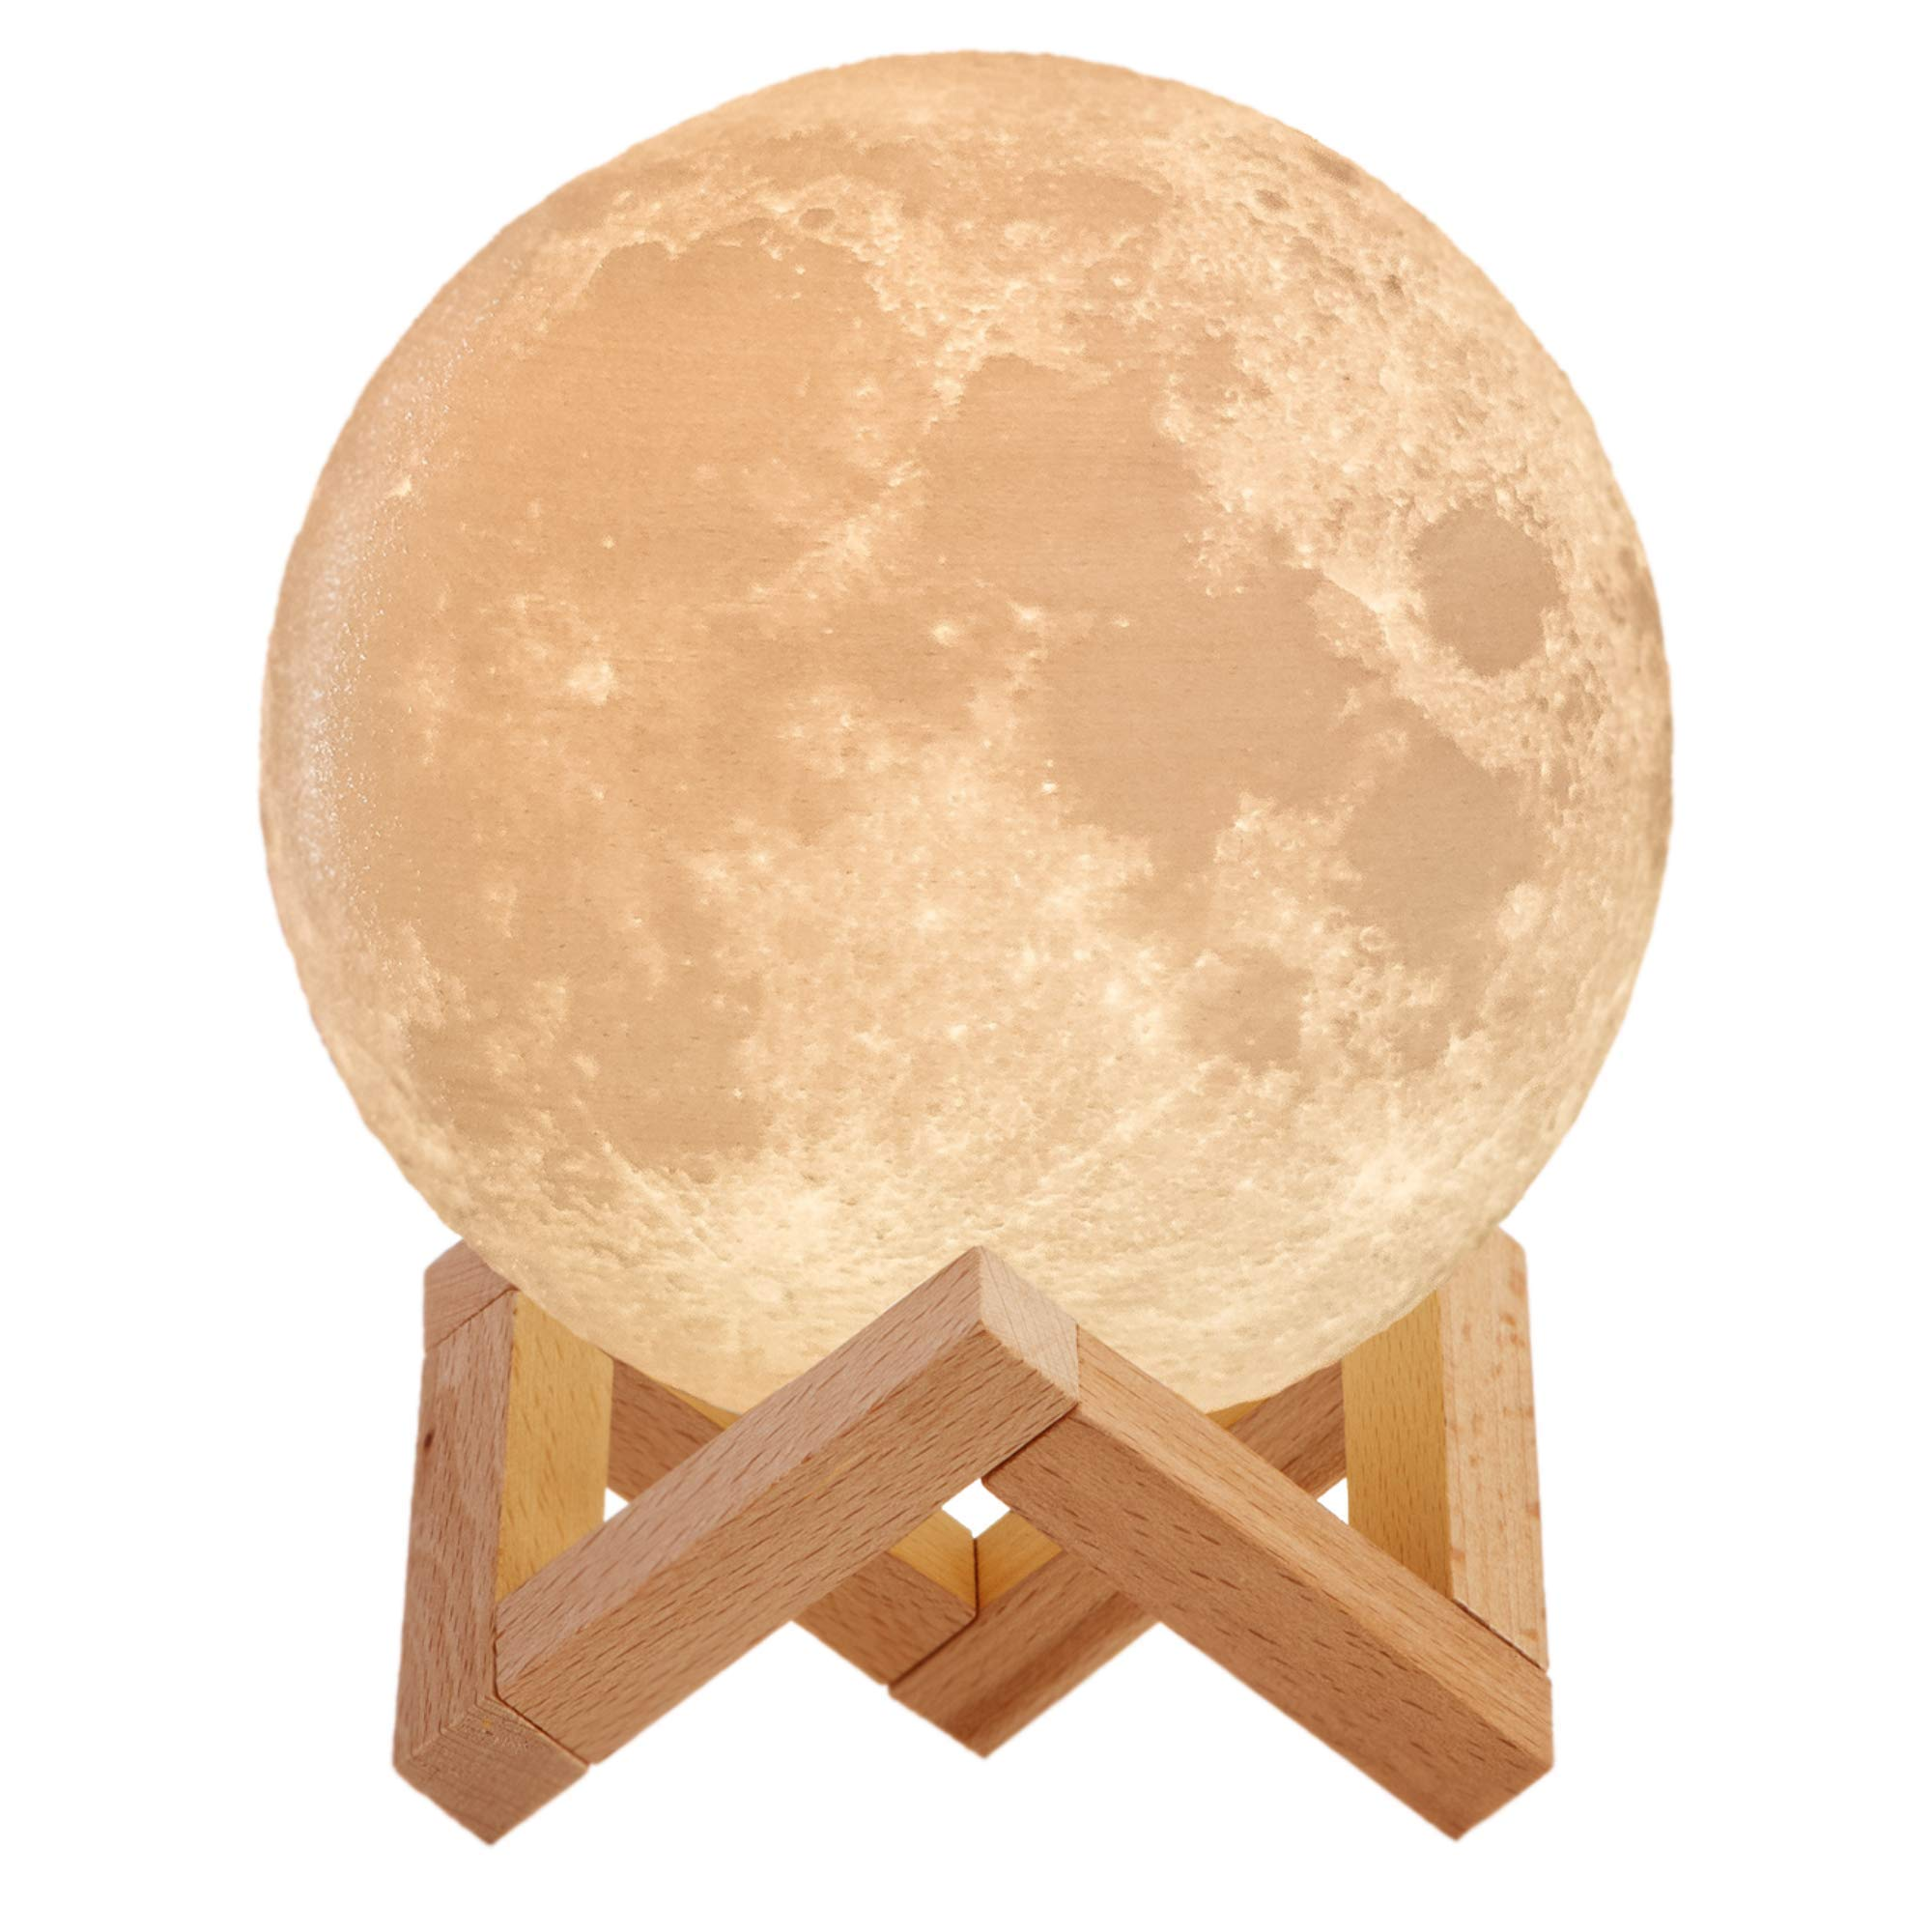 Mind-glowing 3D Moon Lamp - 16 LED Colors, Dimmable, Rechargeable Night Light (Large, 5.9in) with Wooden Stand, Remote & Touch Control - Nursery Decor for your Baby, Birthday Gift Idea for Women by Mind-glowing